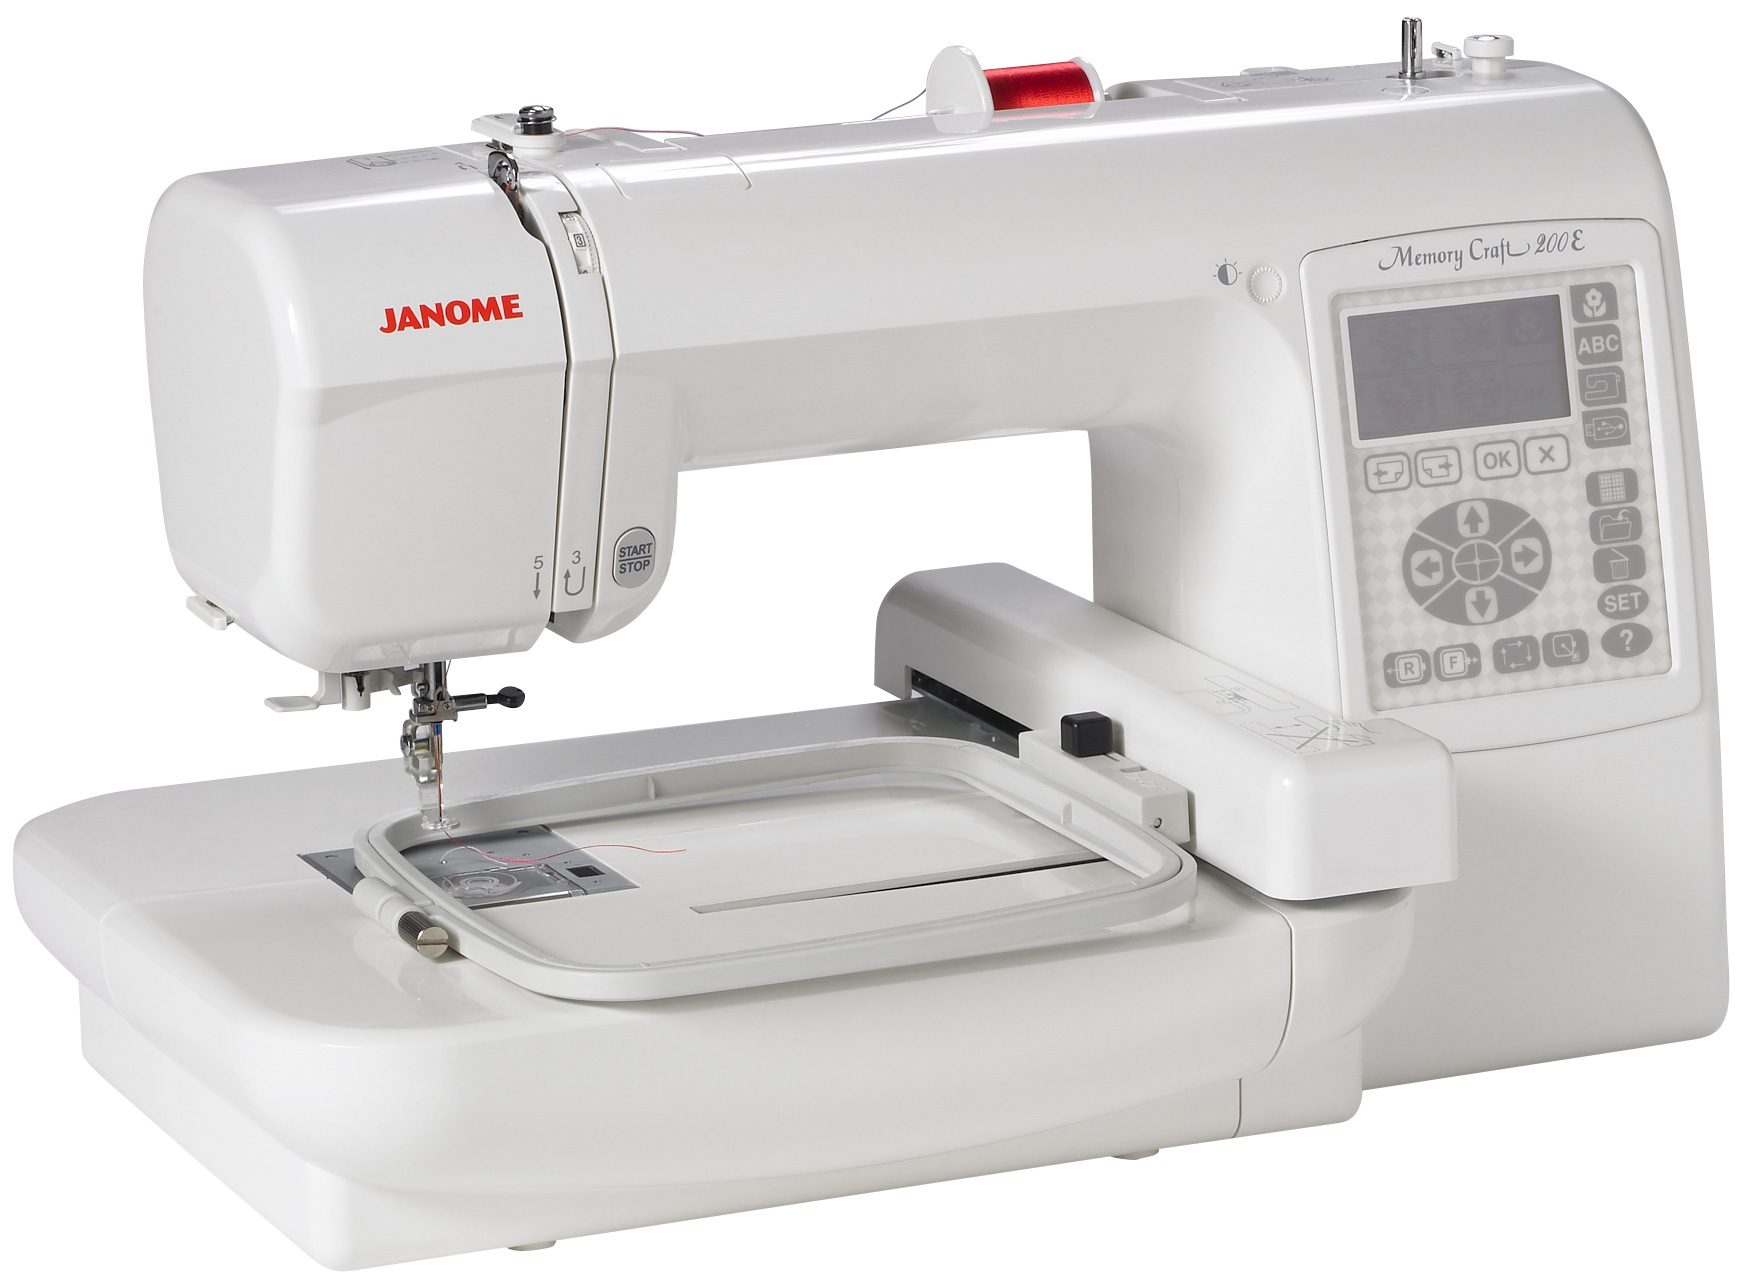 Janome embroidery machine patterns video search engine for Janome memory craft 350e manual